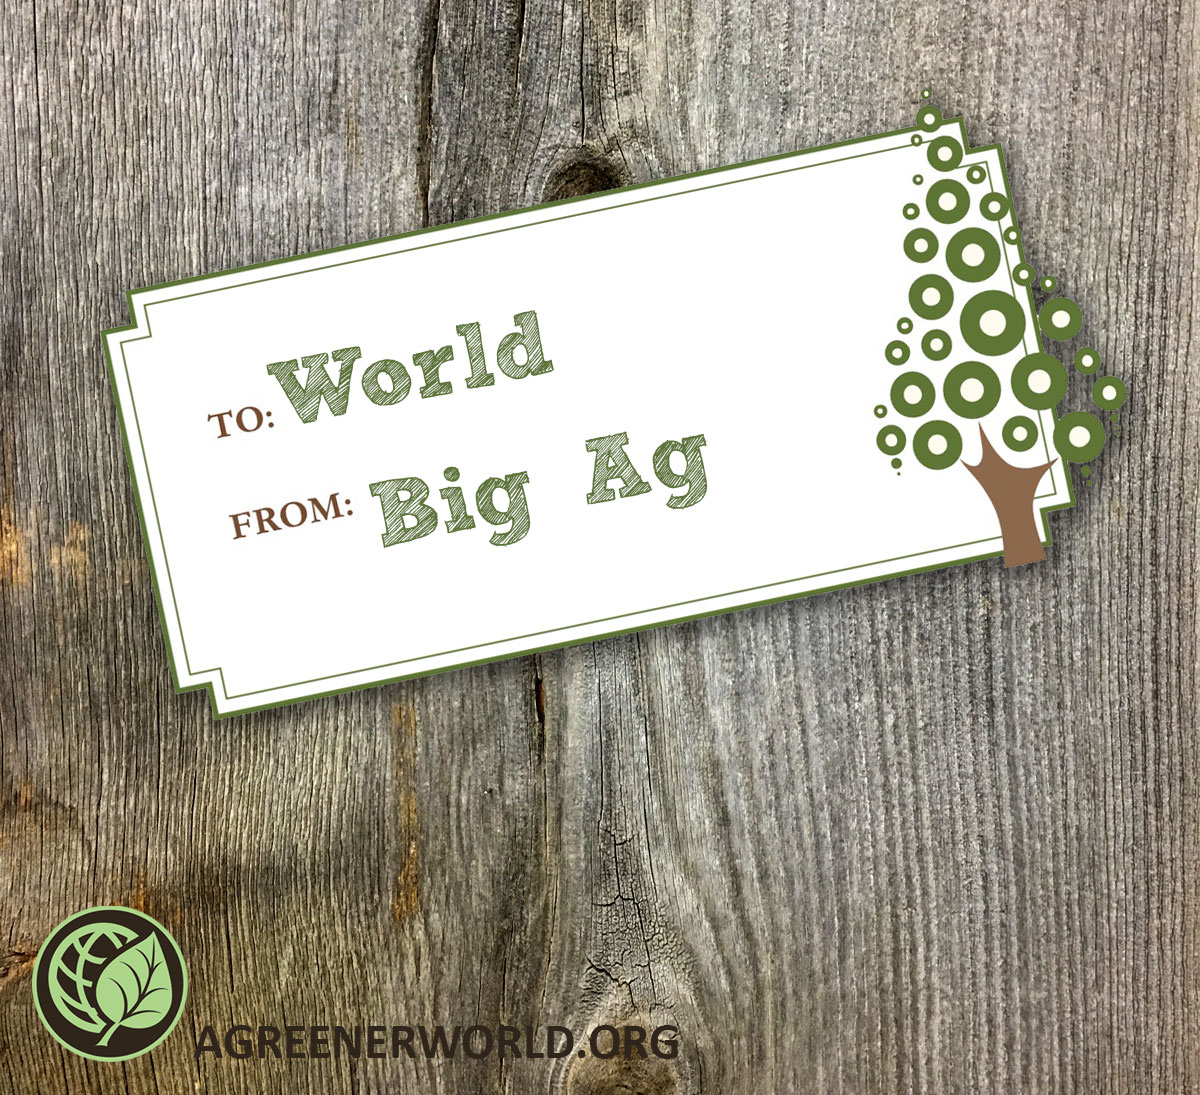 Big Ag Gifts For 2018 Blog